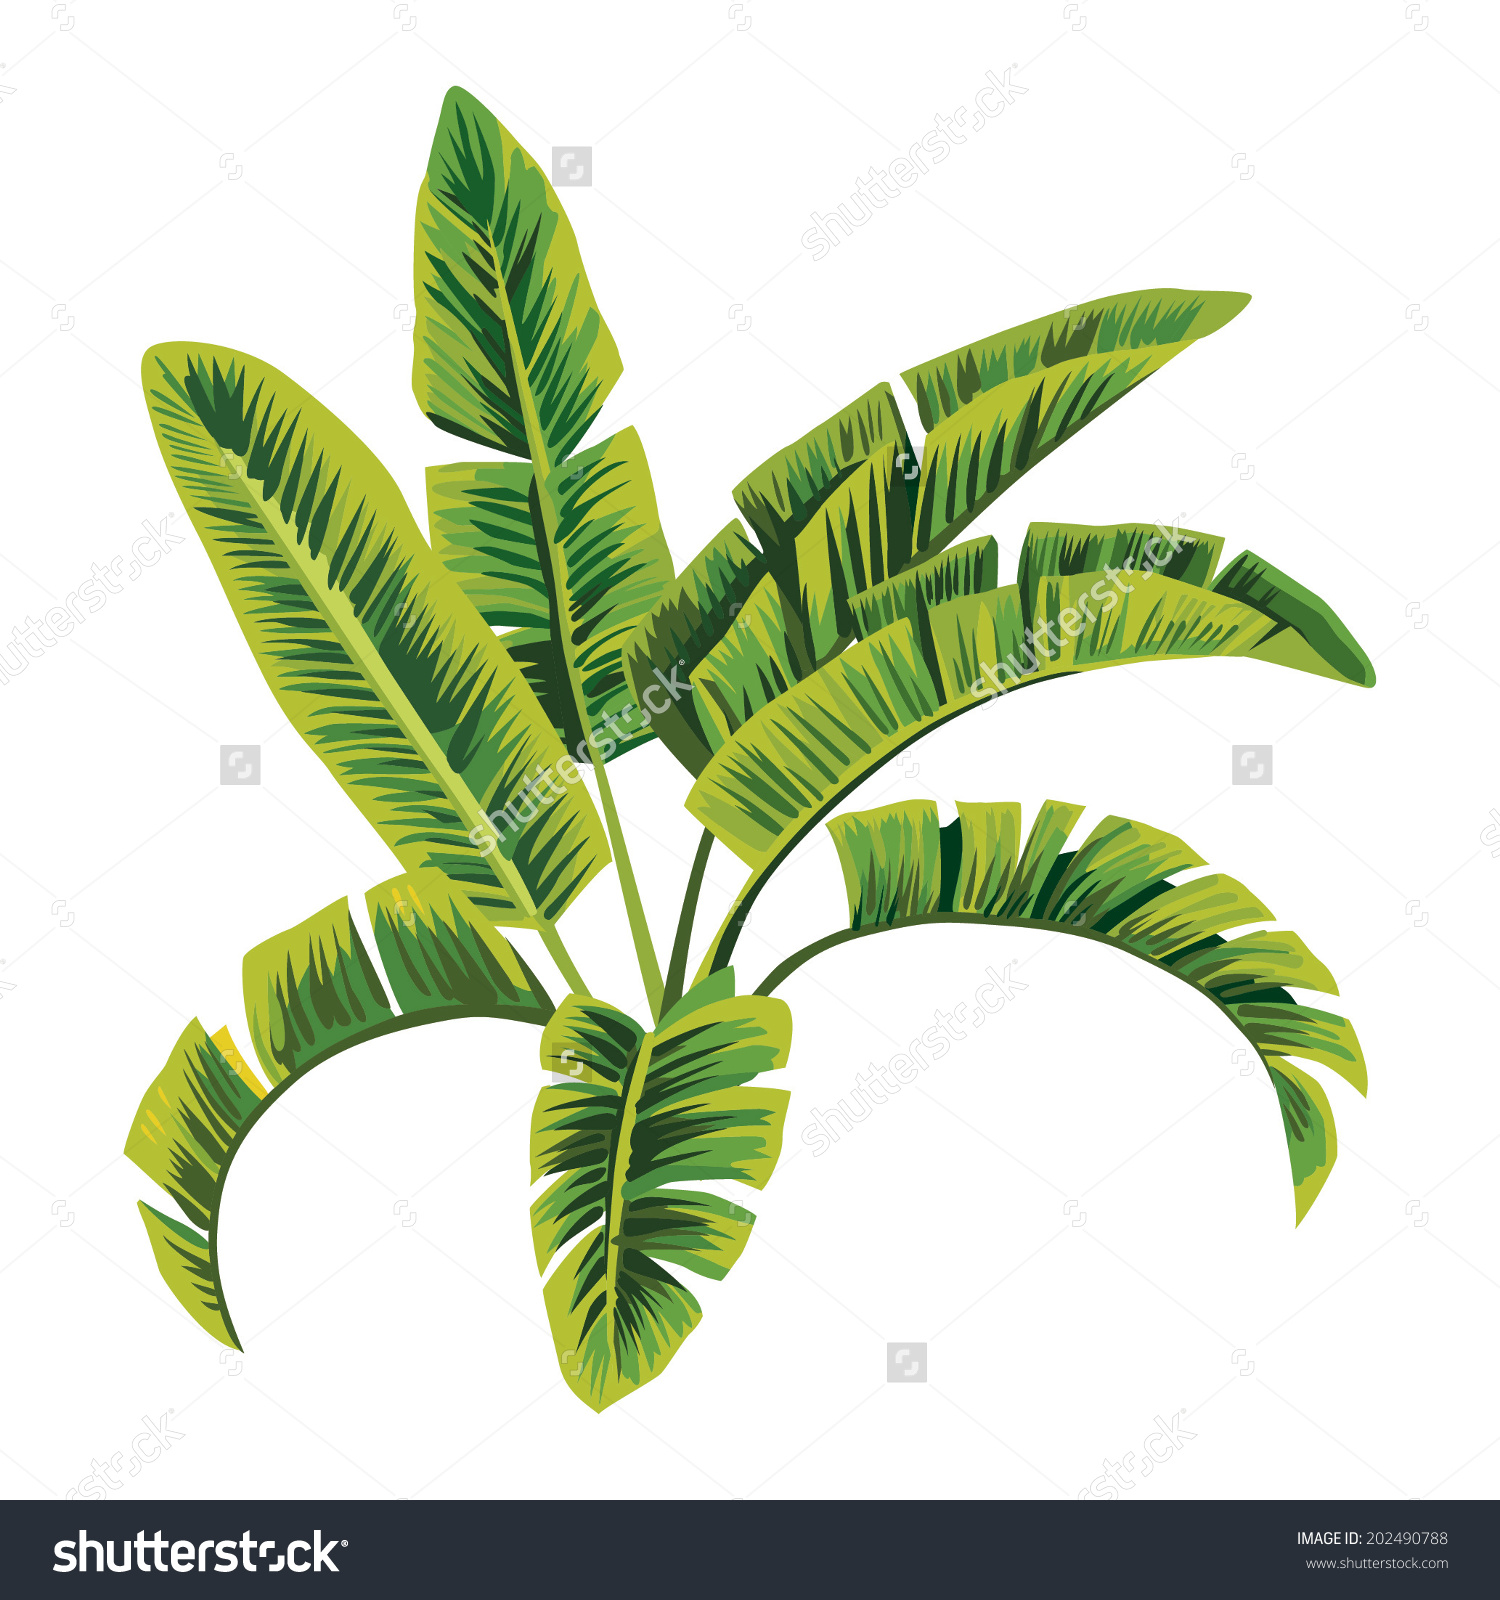 Painting Tropic Palm Banana Leaves Tree Stock Vector 202490788.